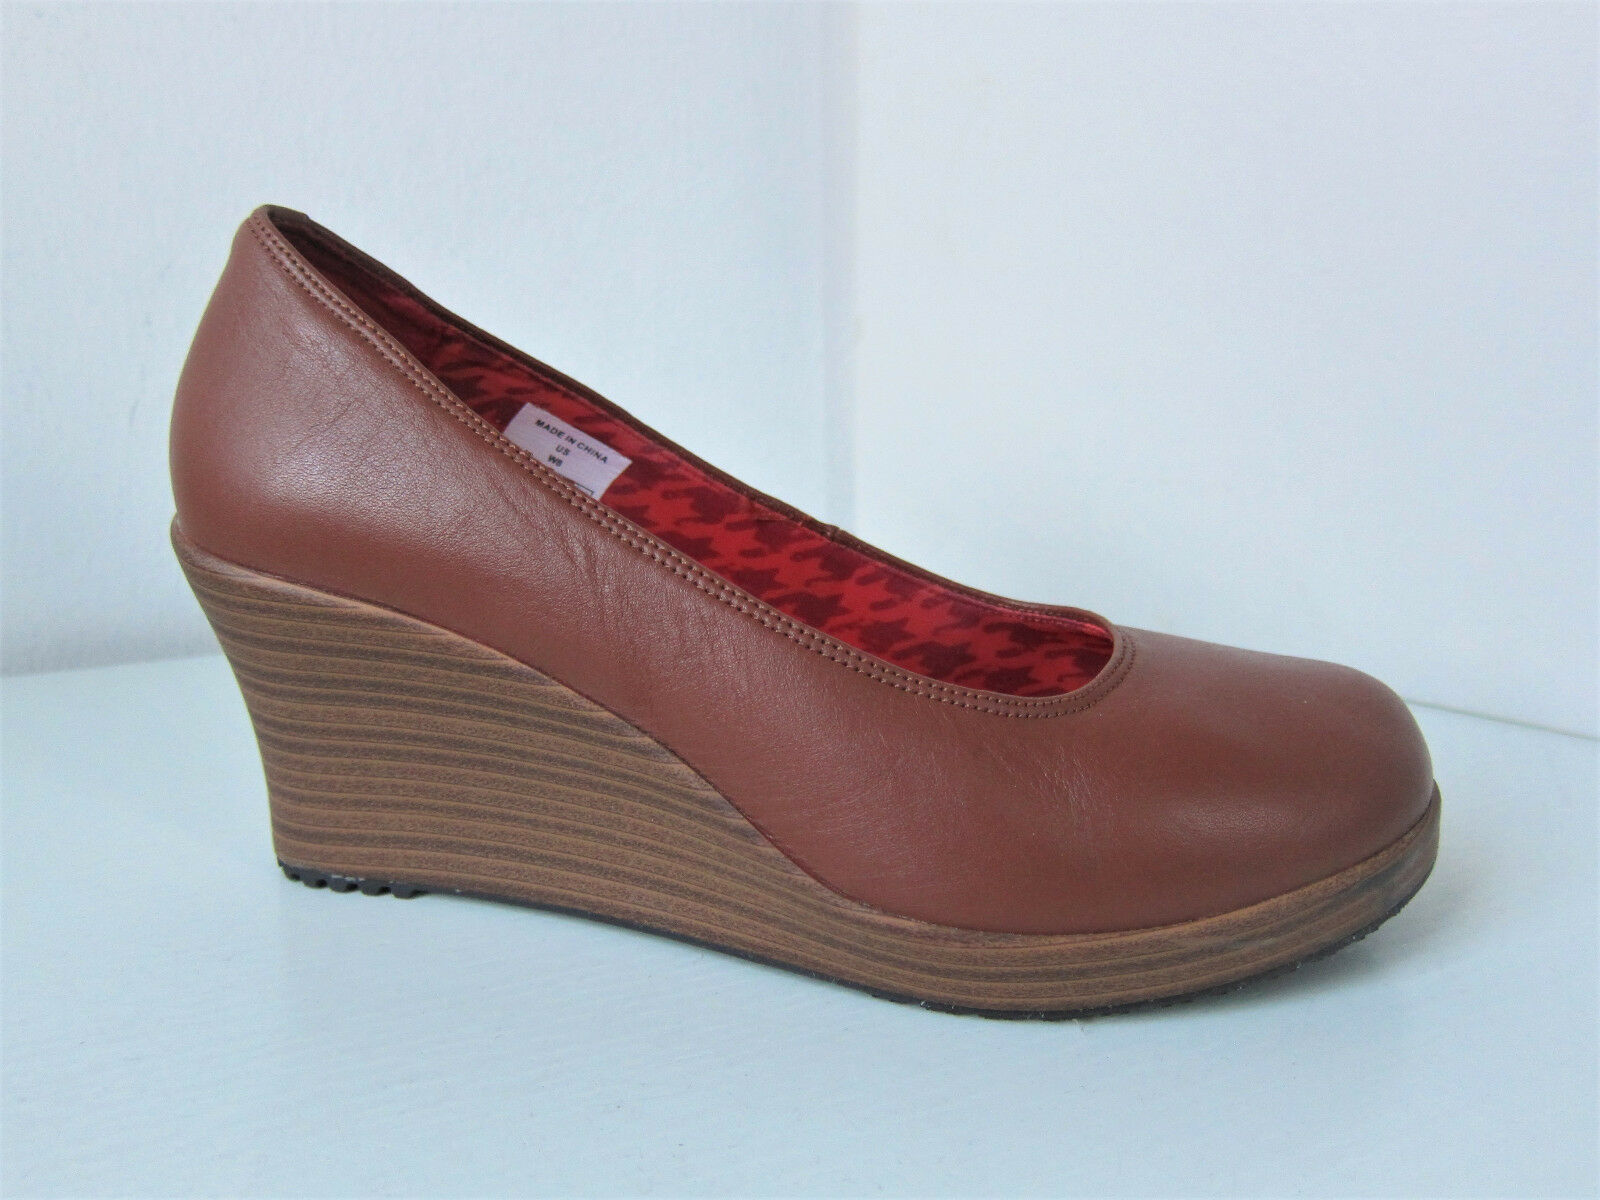 Crocs a-Leigh closed Toe wedge W 8 38 39 Camel canela Walnut de salón con cuña